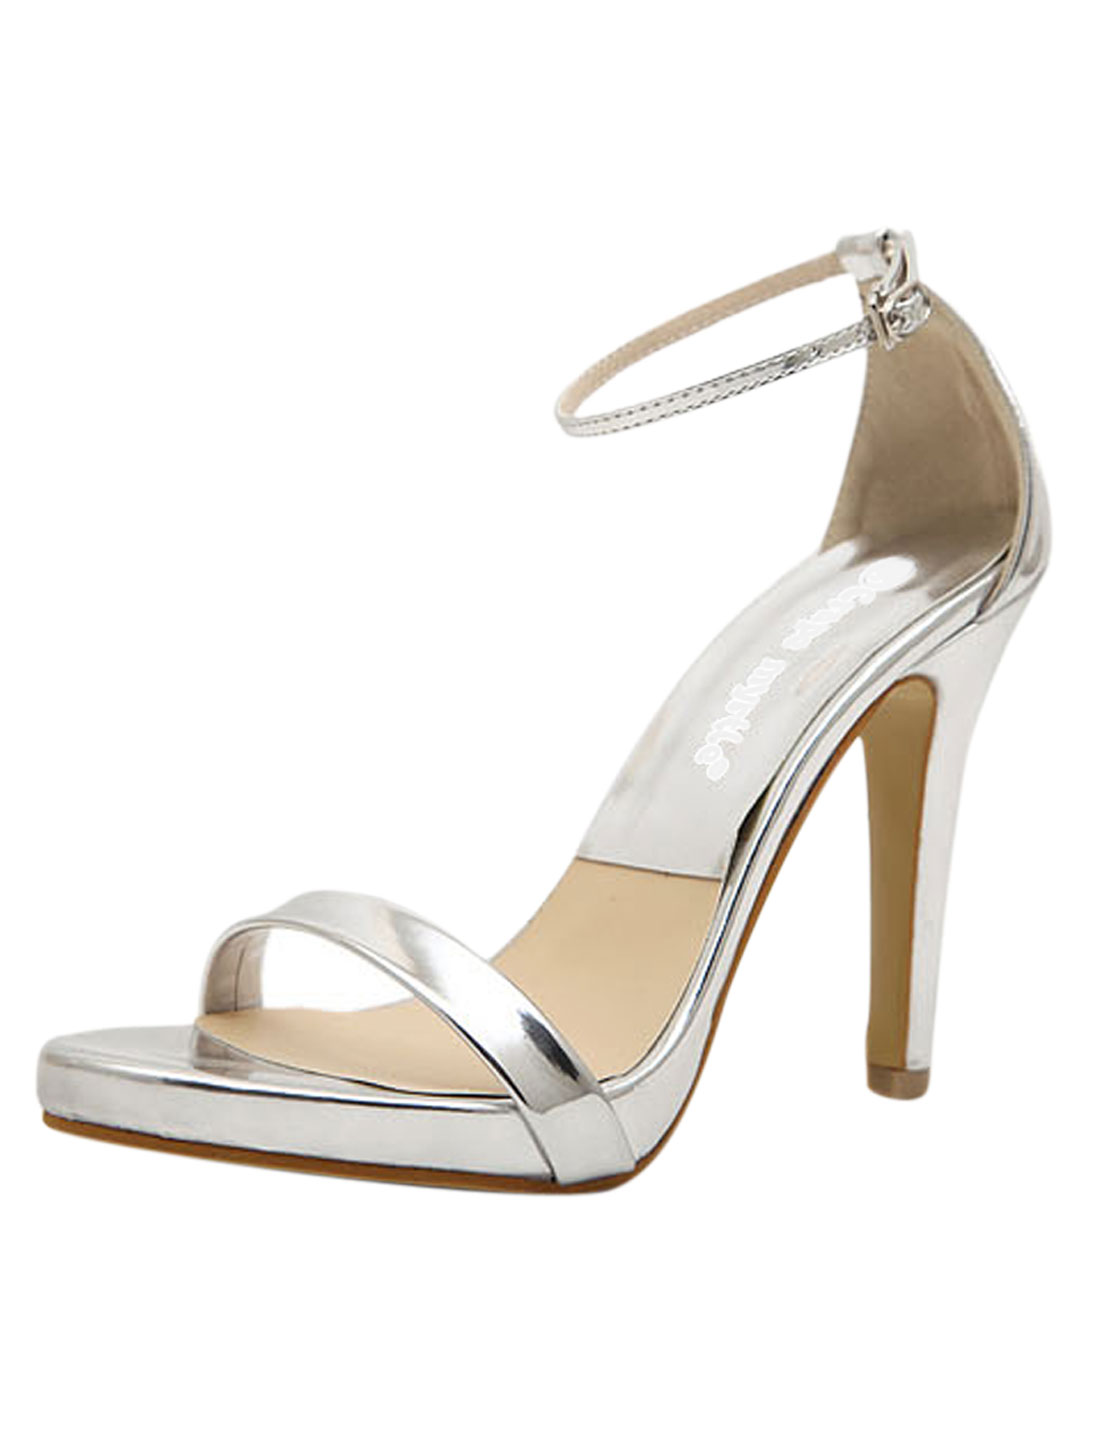 Women Shimmery Metallic Ankle Strap High Heel Sandals Silver Tone US 6.5